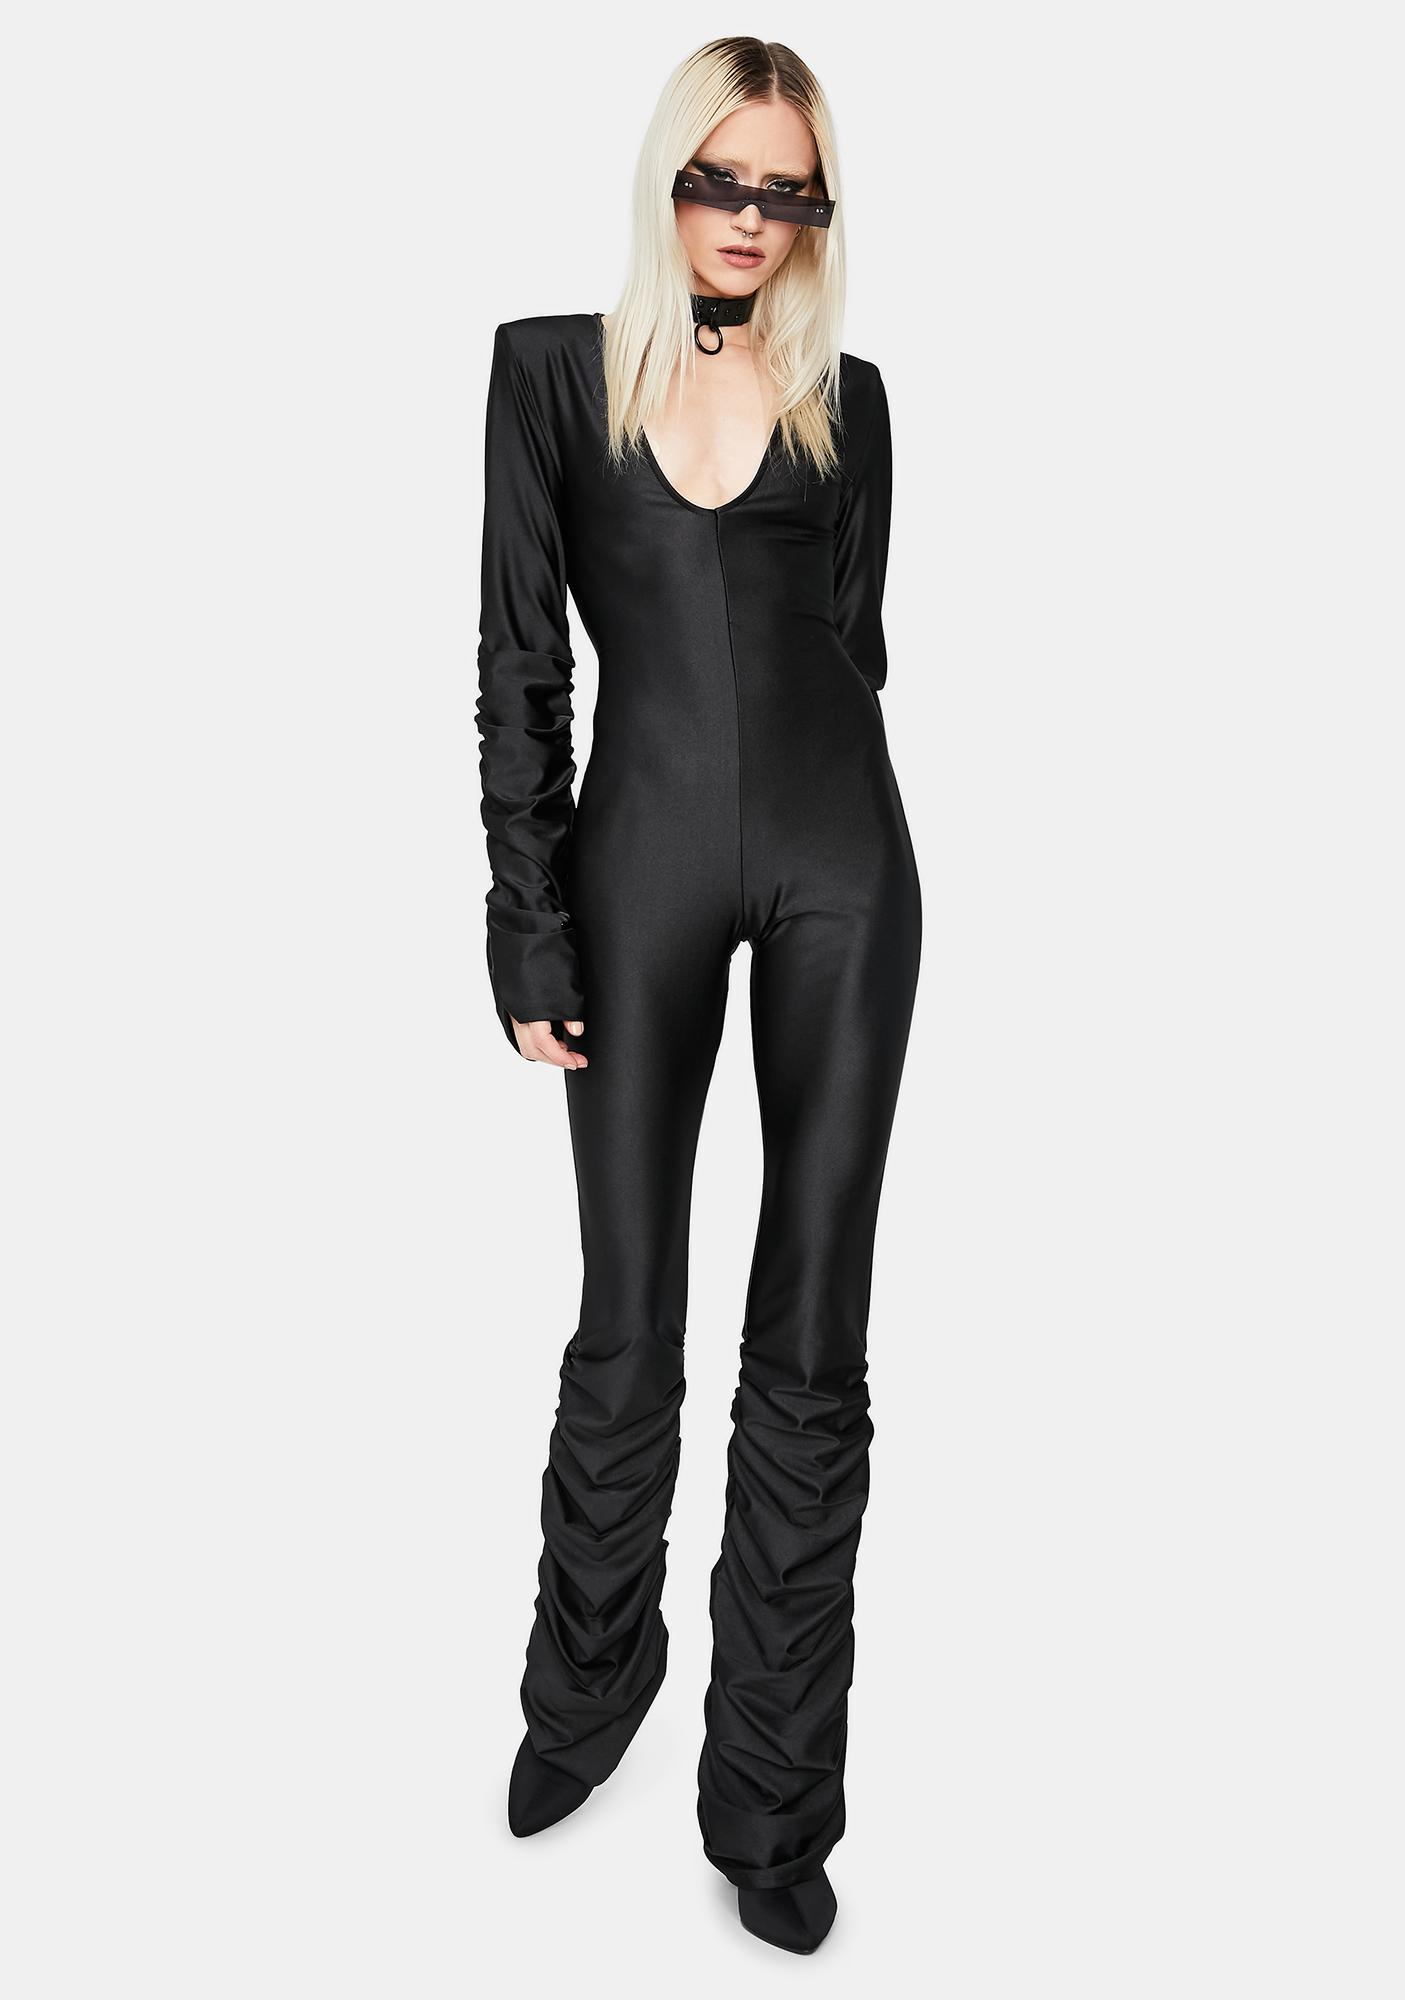 One Night Standards Ruched Jumpsuit